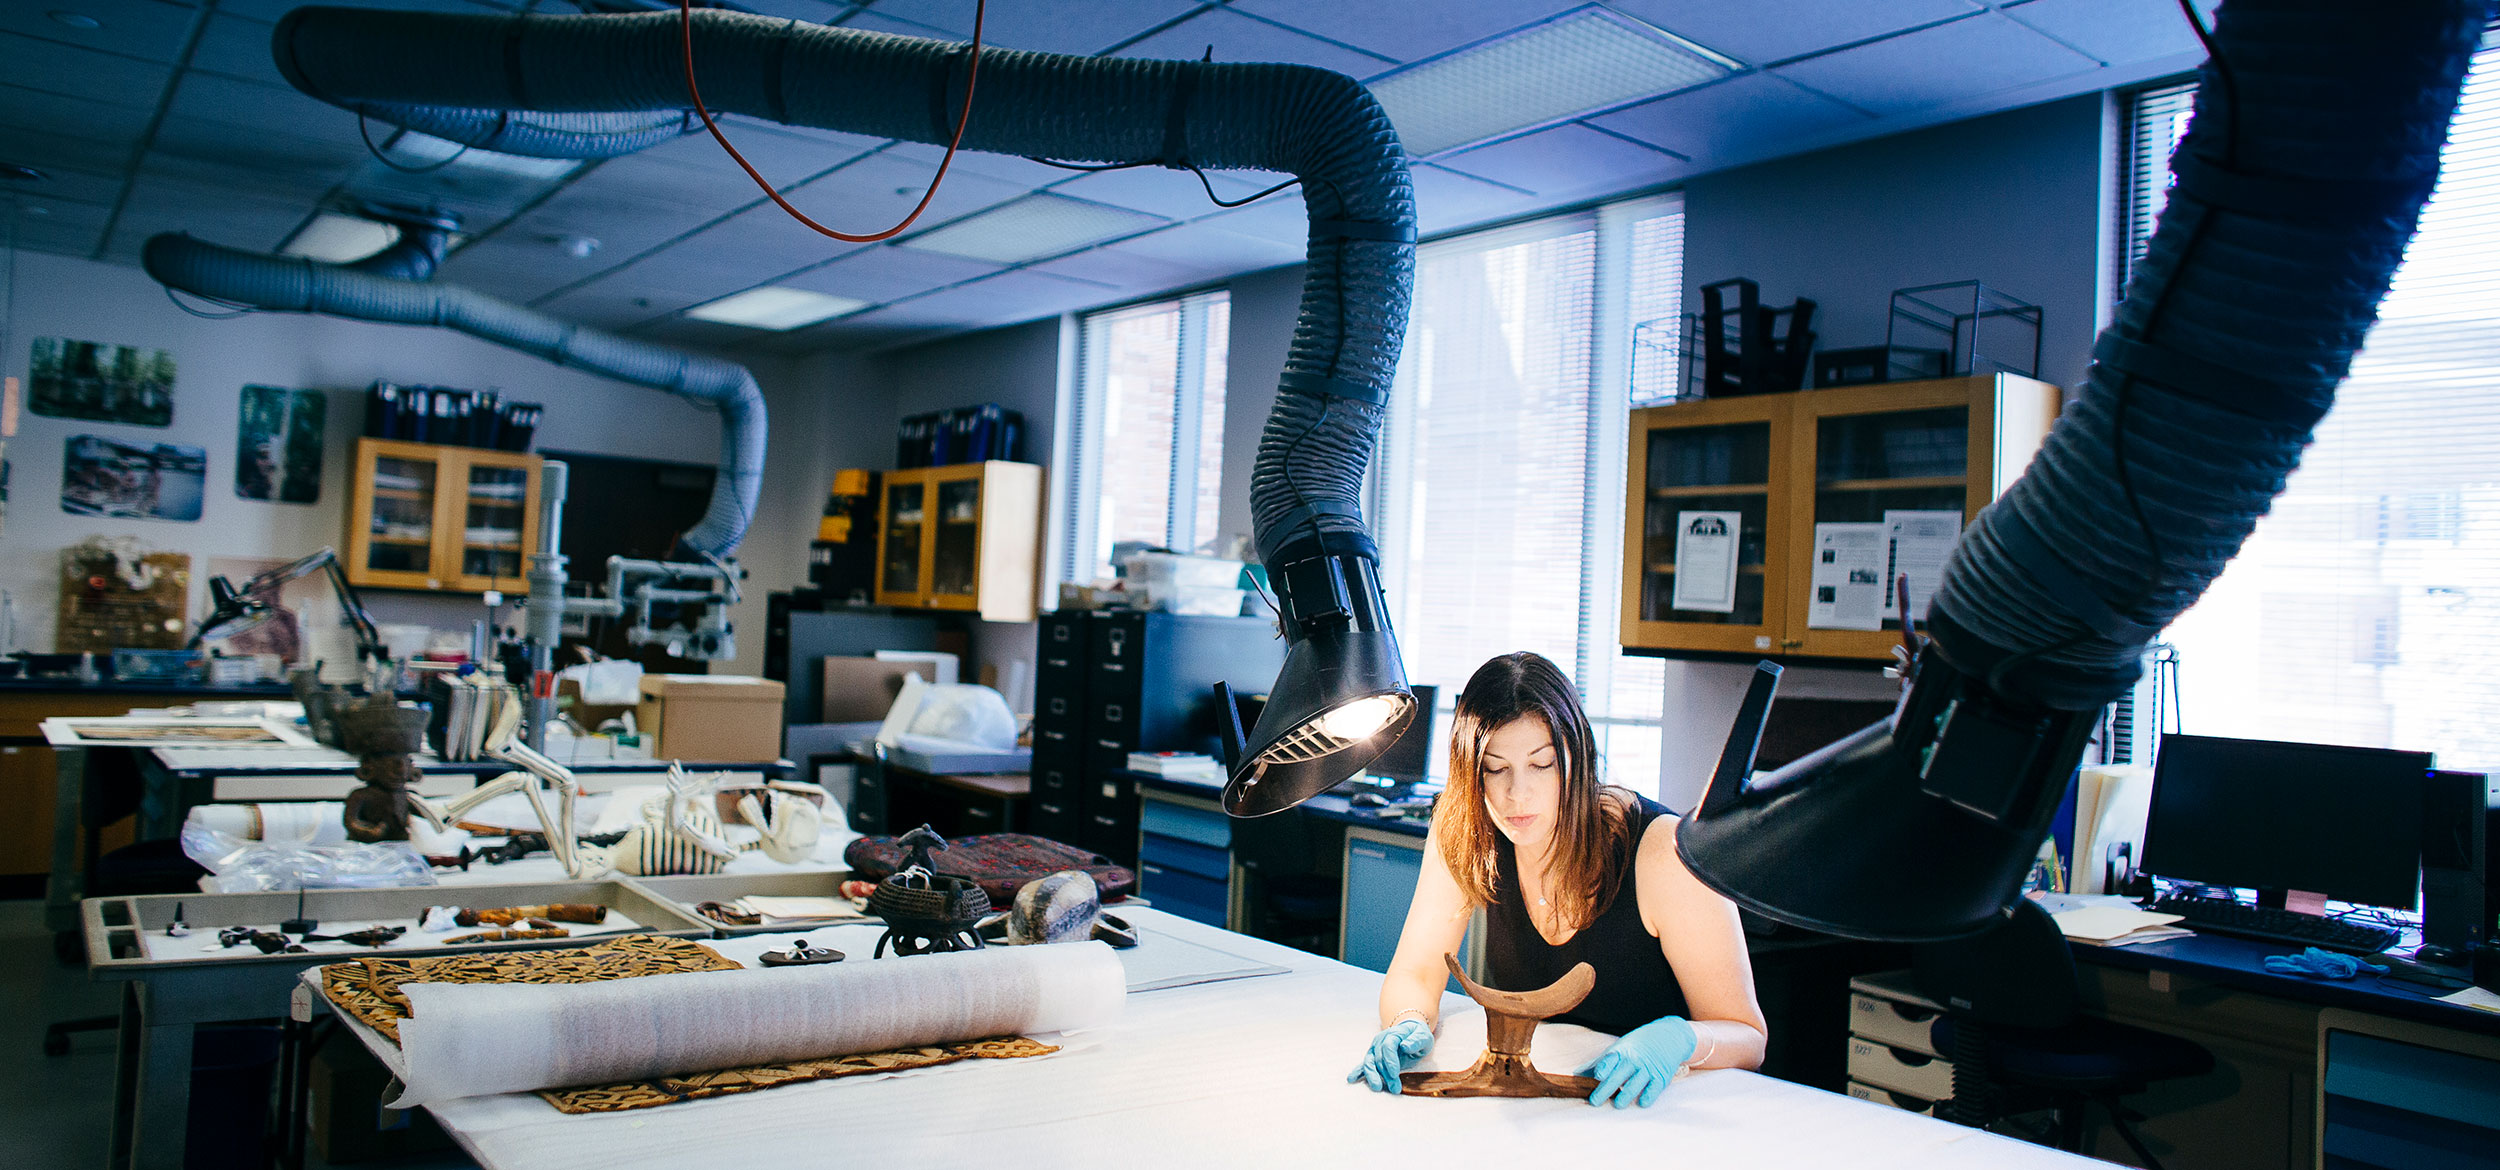 Female student analyzes artifact in lab.